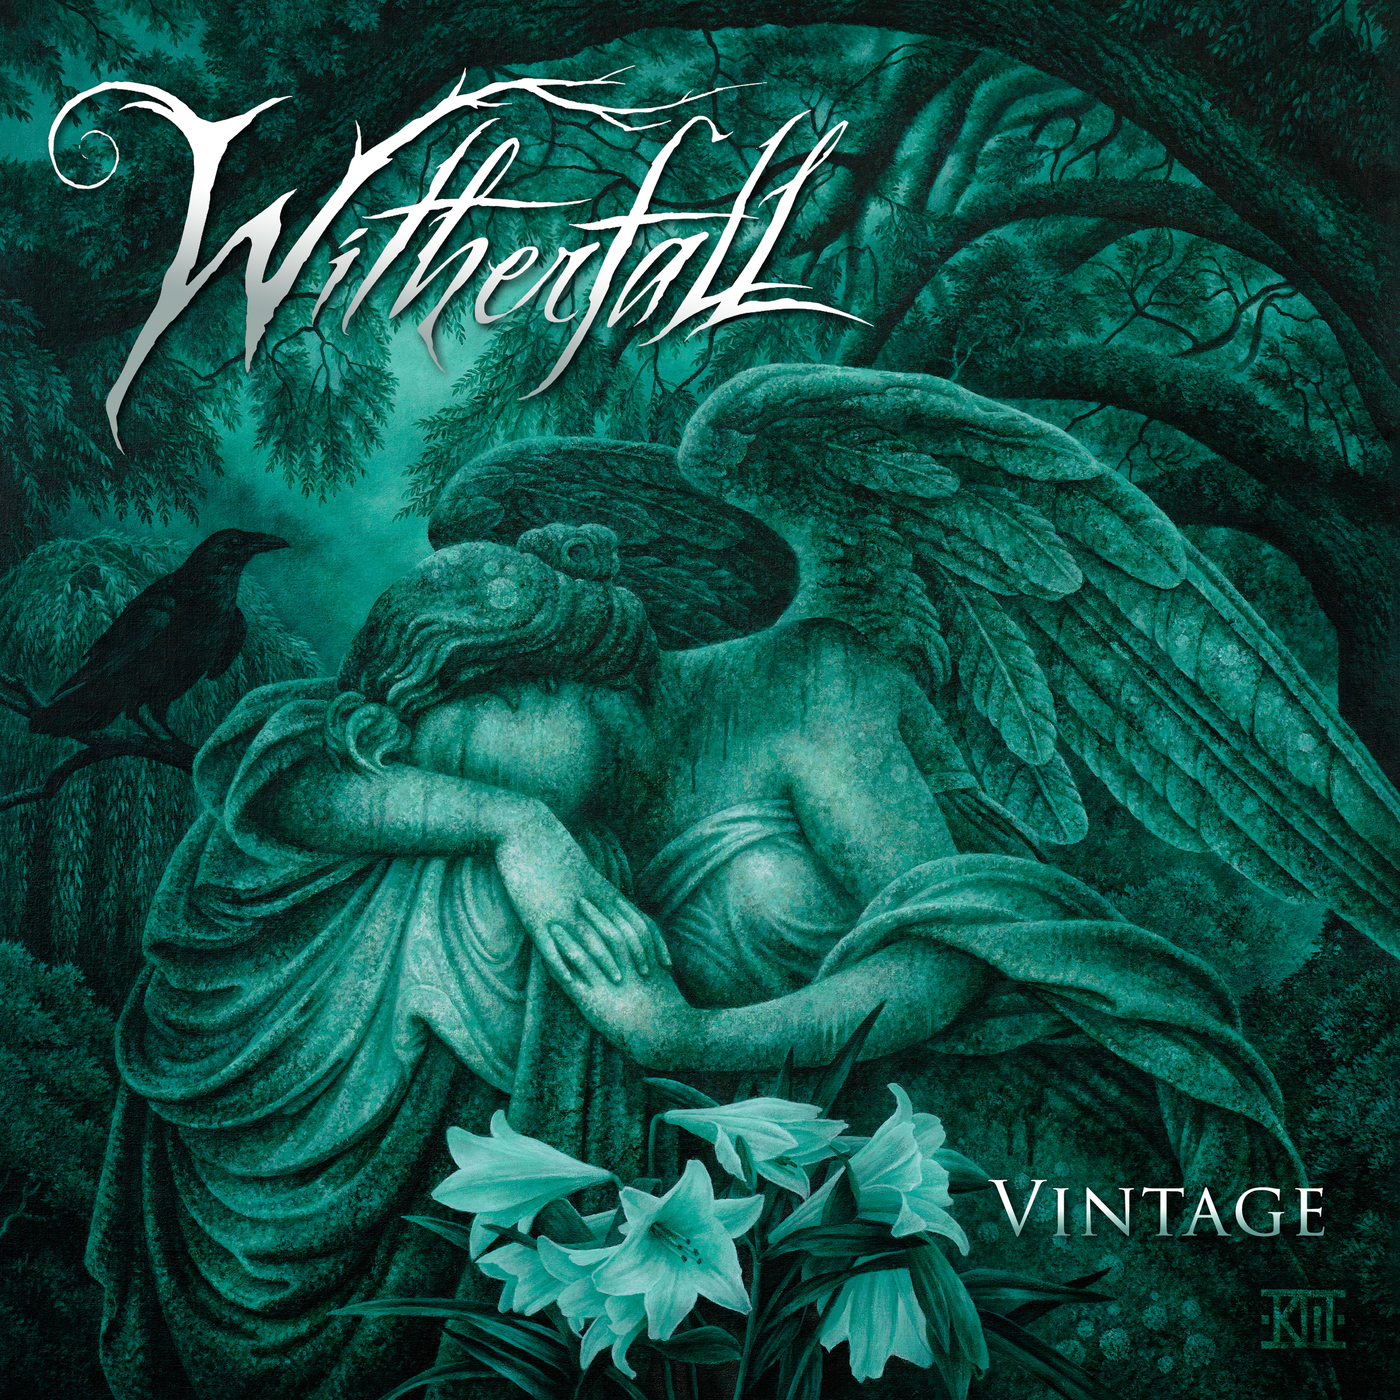 Vintage - EP - Witherfall